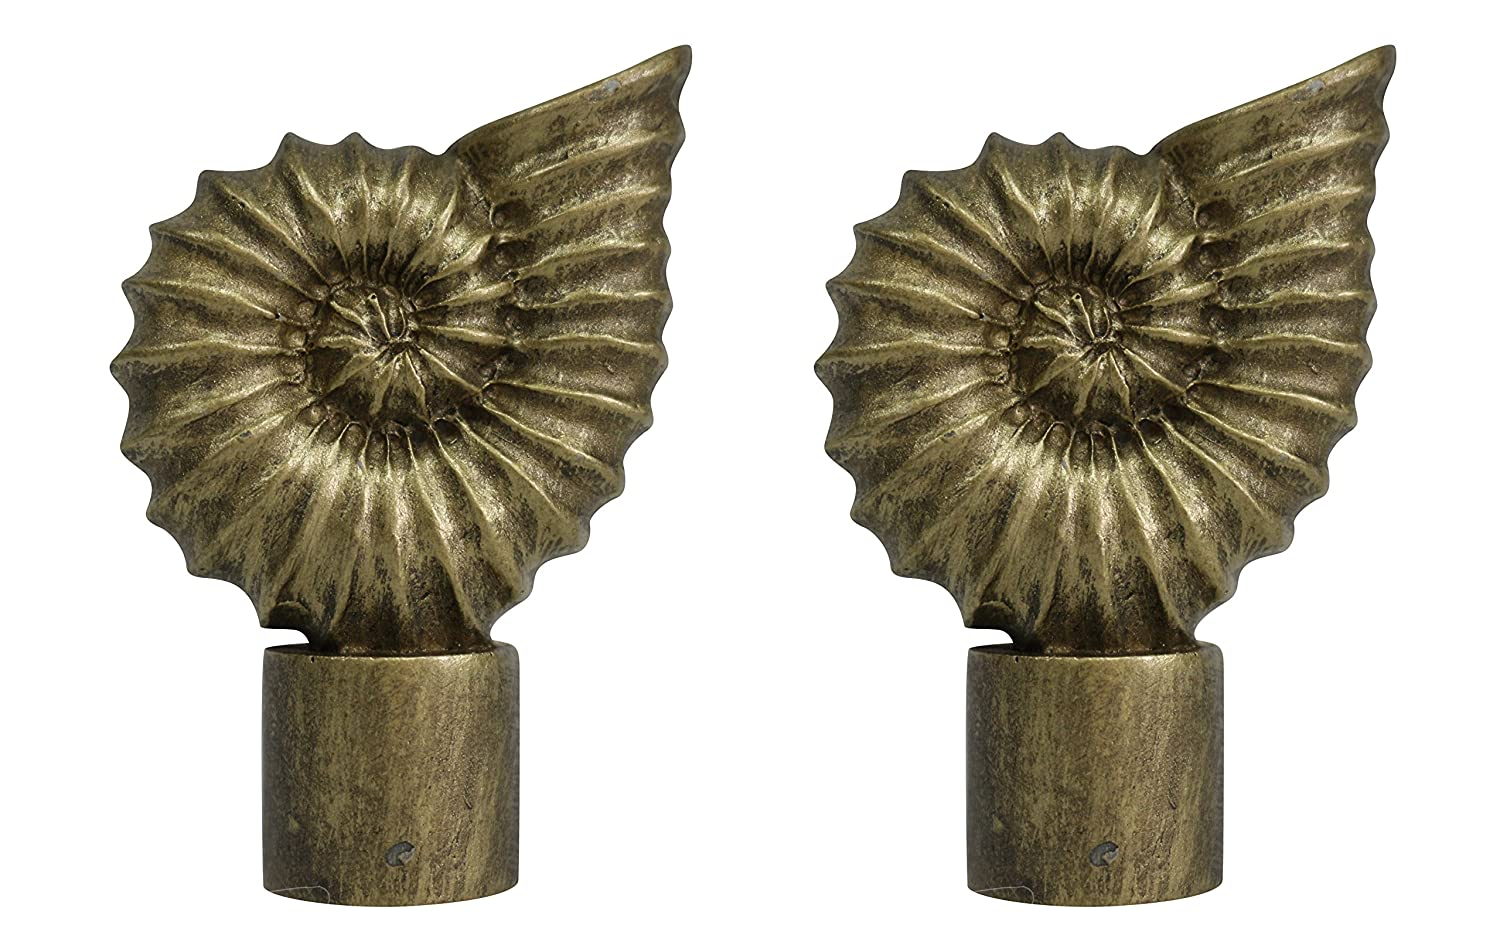 2 5//8-inch Tall Antique Gold Urbanest Seashell Finial